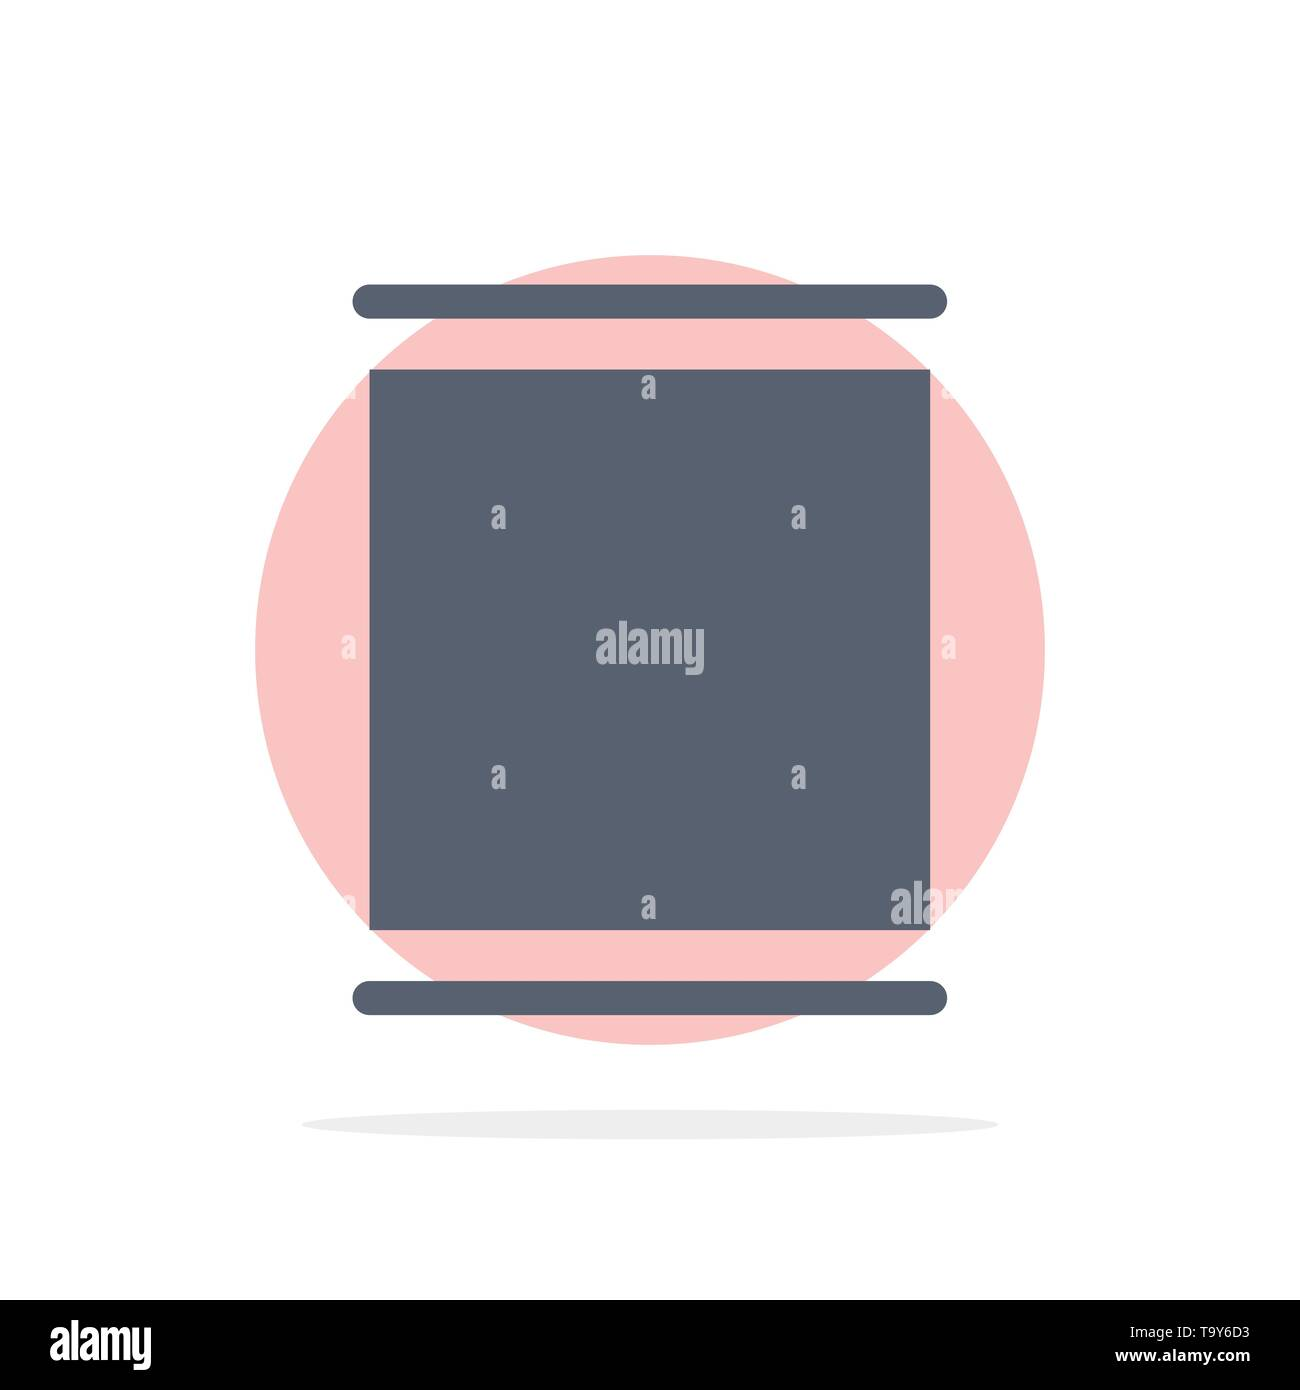 Gallery, Instagram, Sets, Timeline Abstract Circle Background Flat color Icon - Stock Image